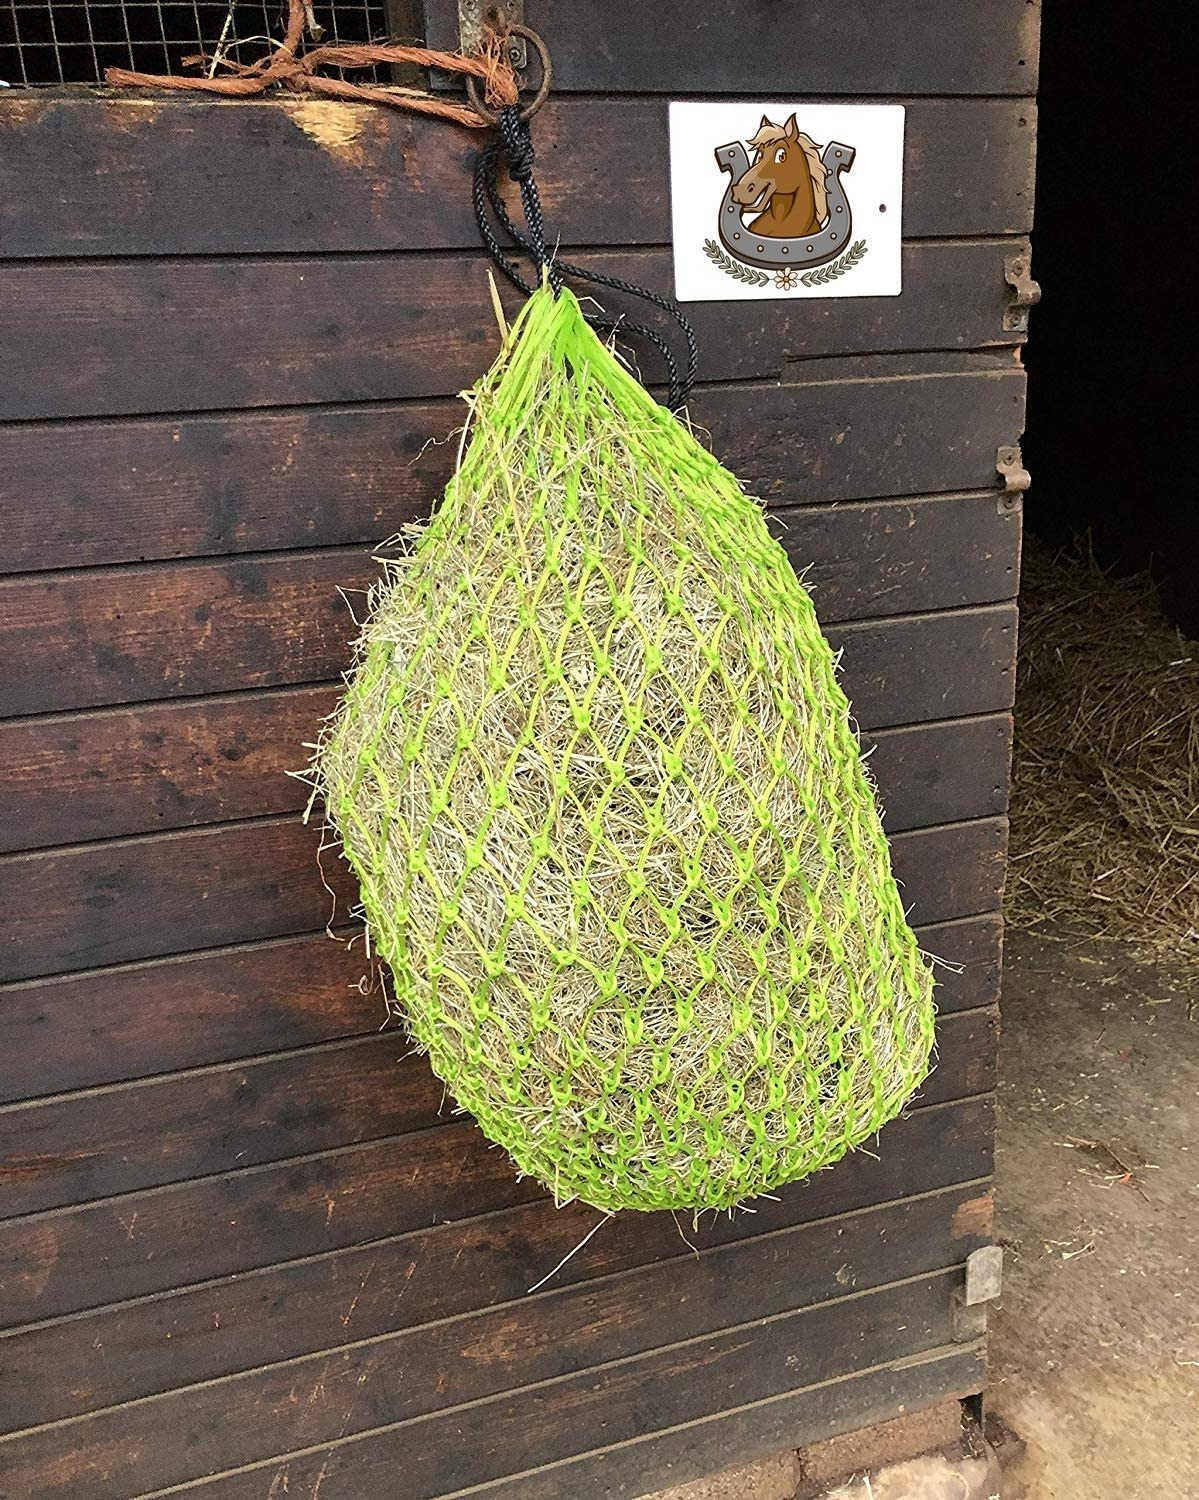 Metal Ring Net Bag With Extra Strong Mesh Holes.Horse Accessories Haynet To Trickle Feed Haylage Horse Treats /& Soak Hay Bale 2 X Hay Net Slow Feeder For Greedy Horses